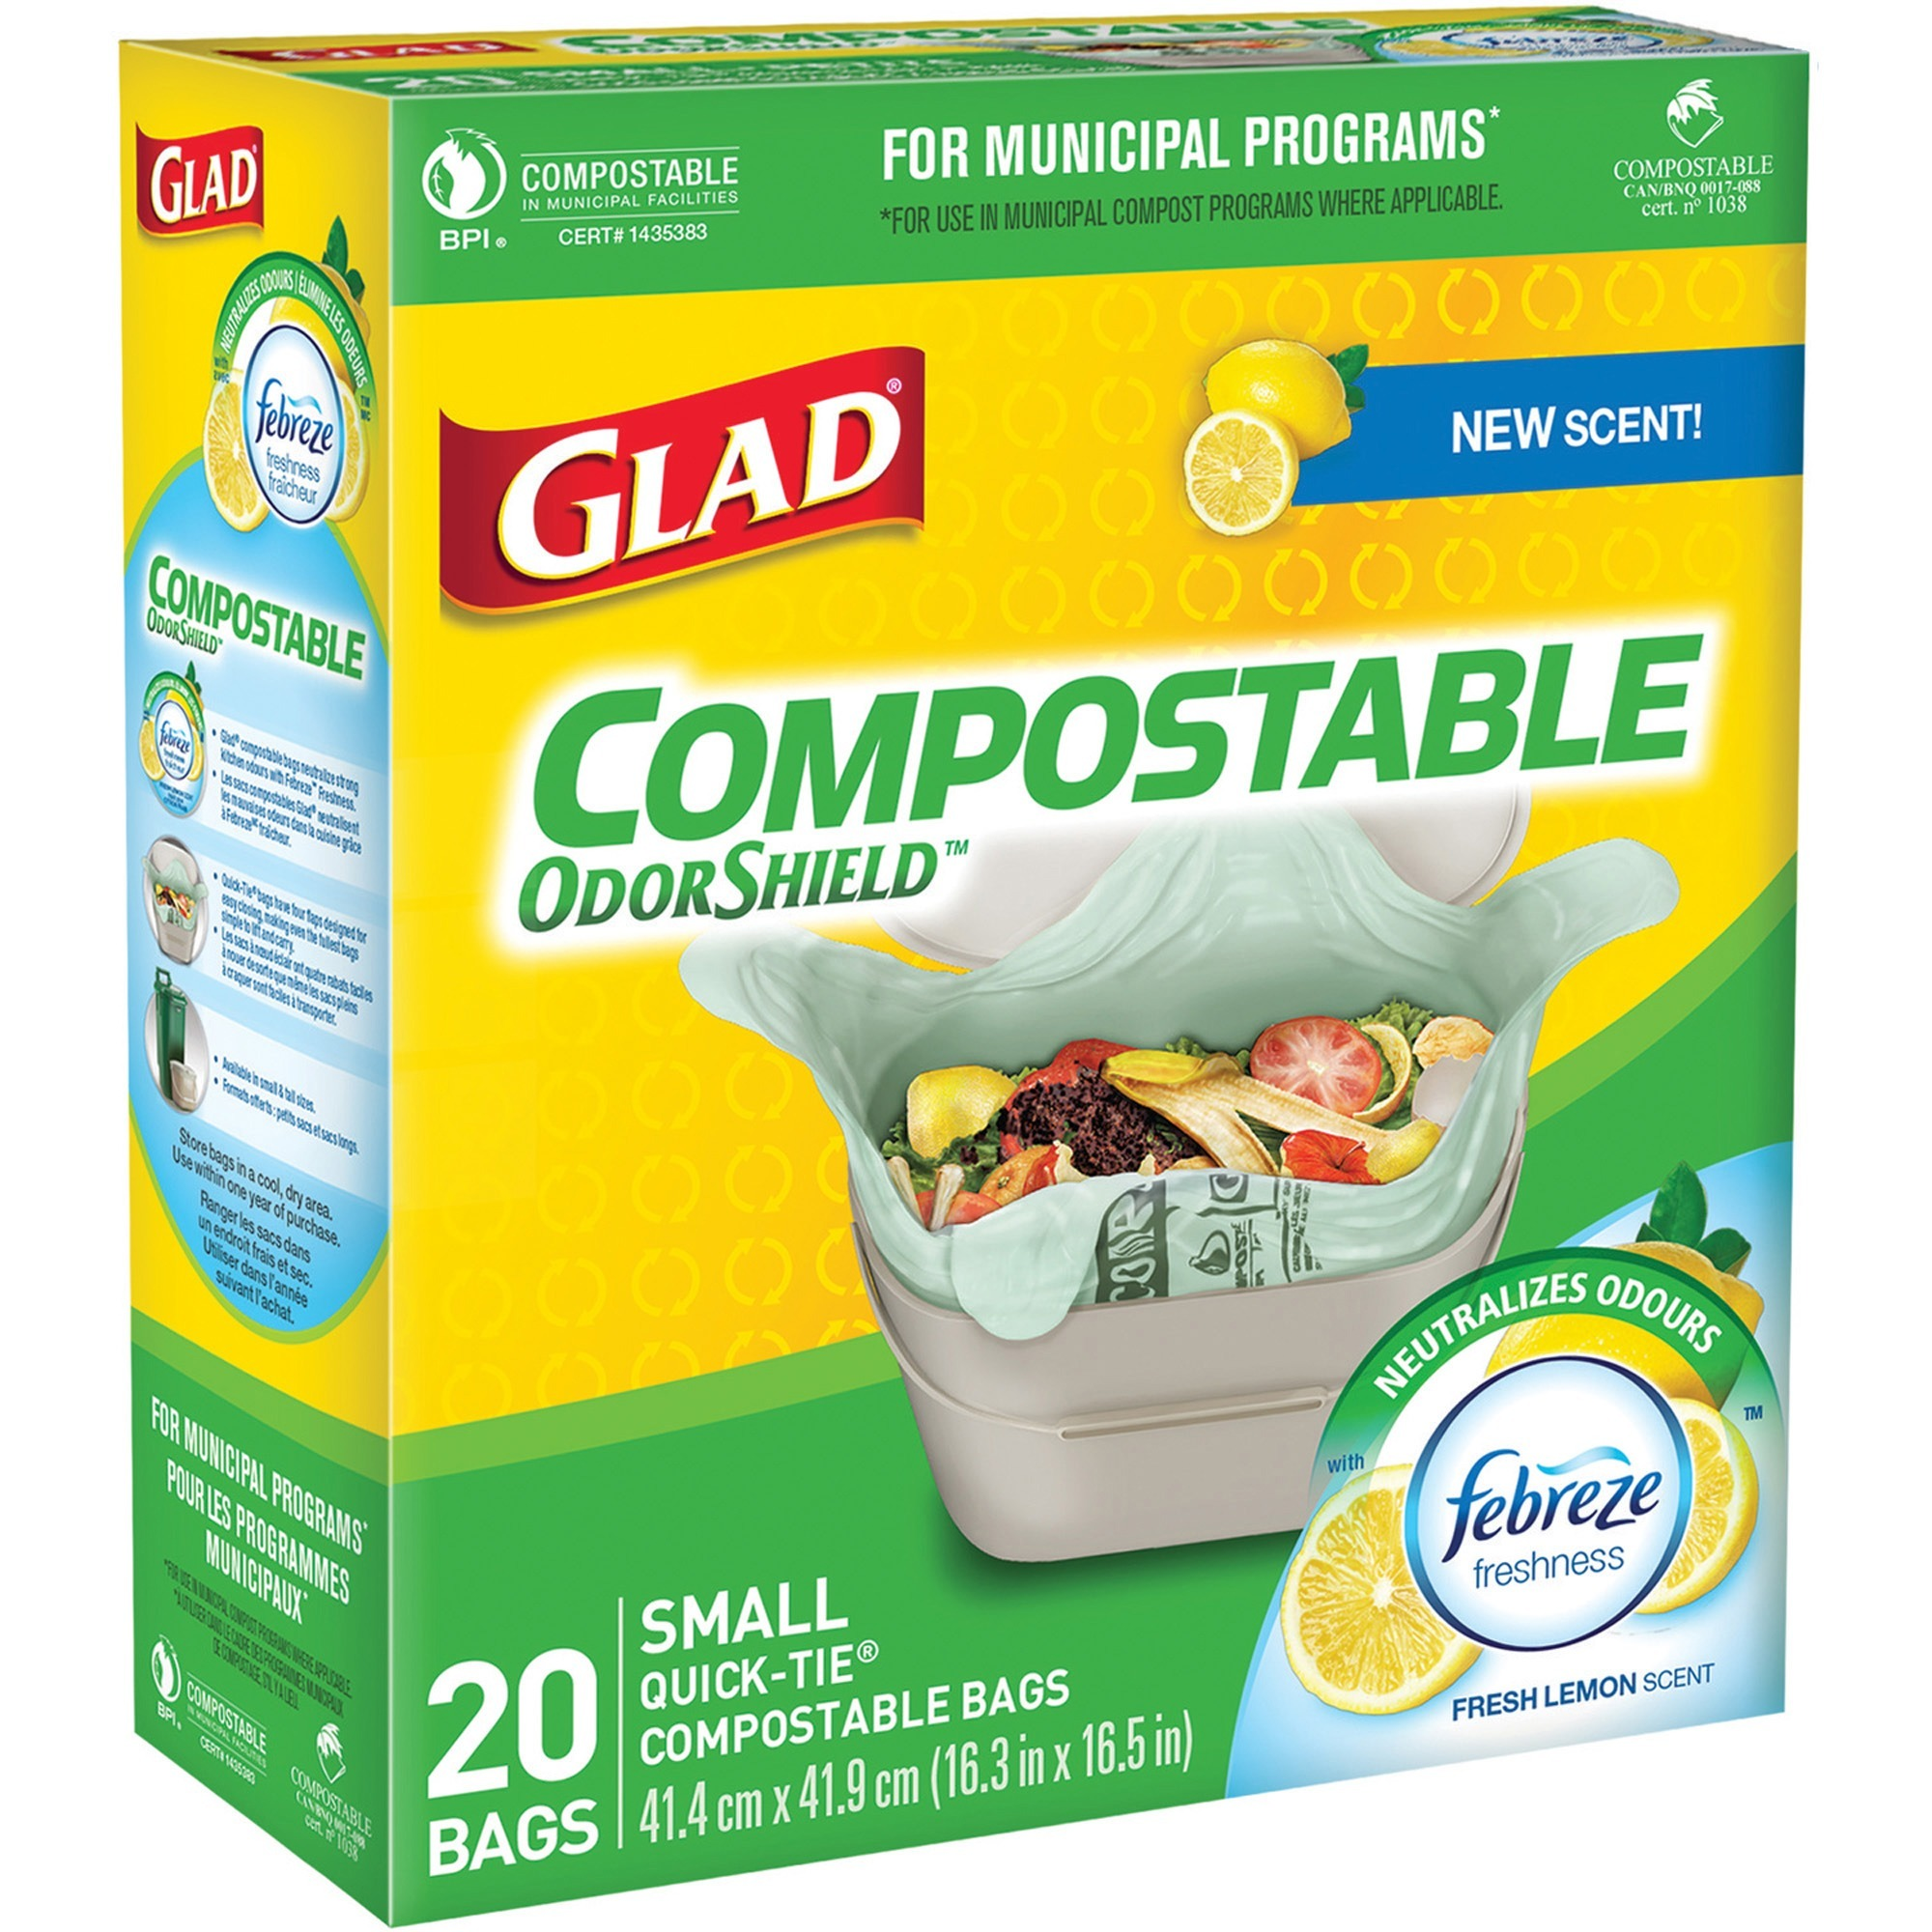 Glad Compostable Bags - Small Size - 9 80 L - 16 30